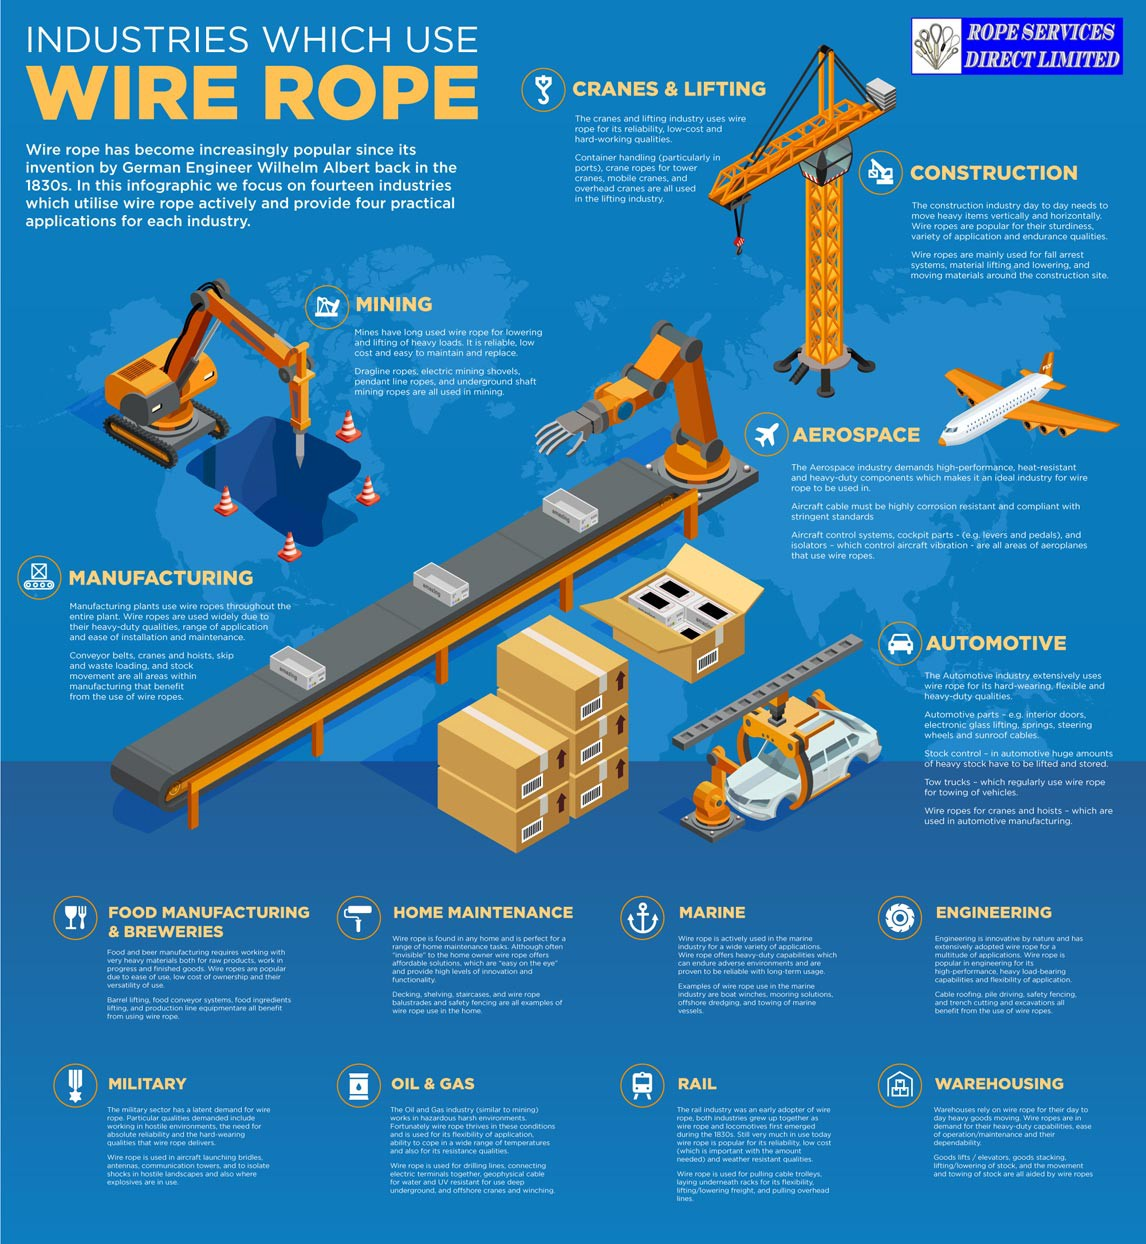 Why is Wire Rope Used by So Many Different Industries?